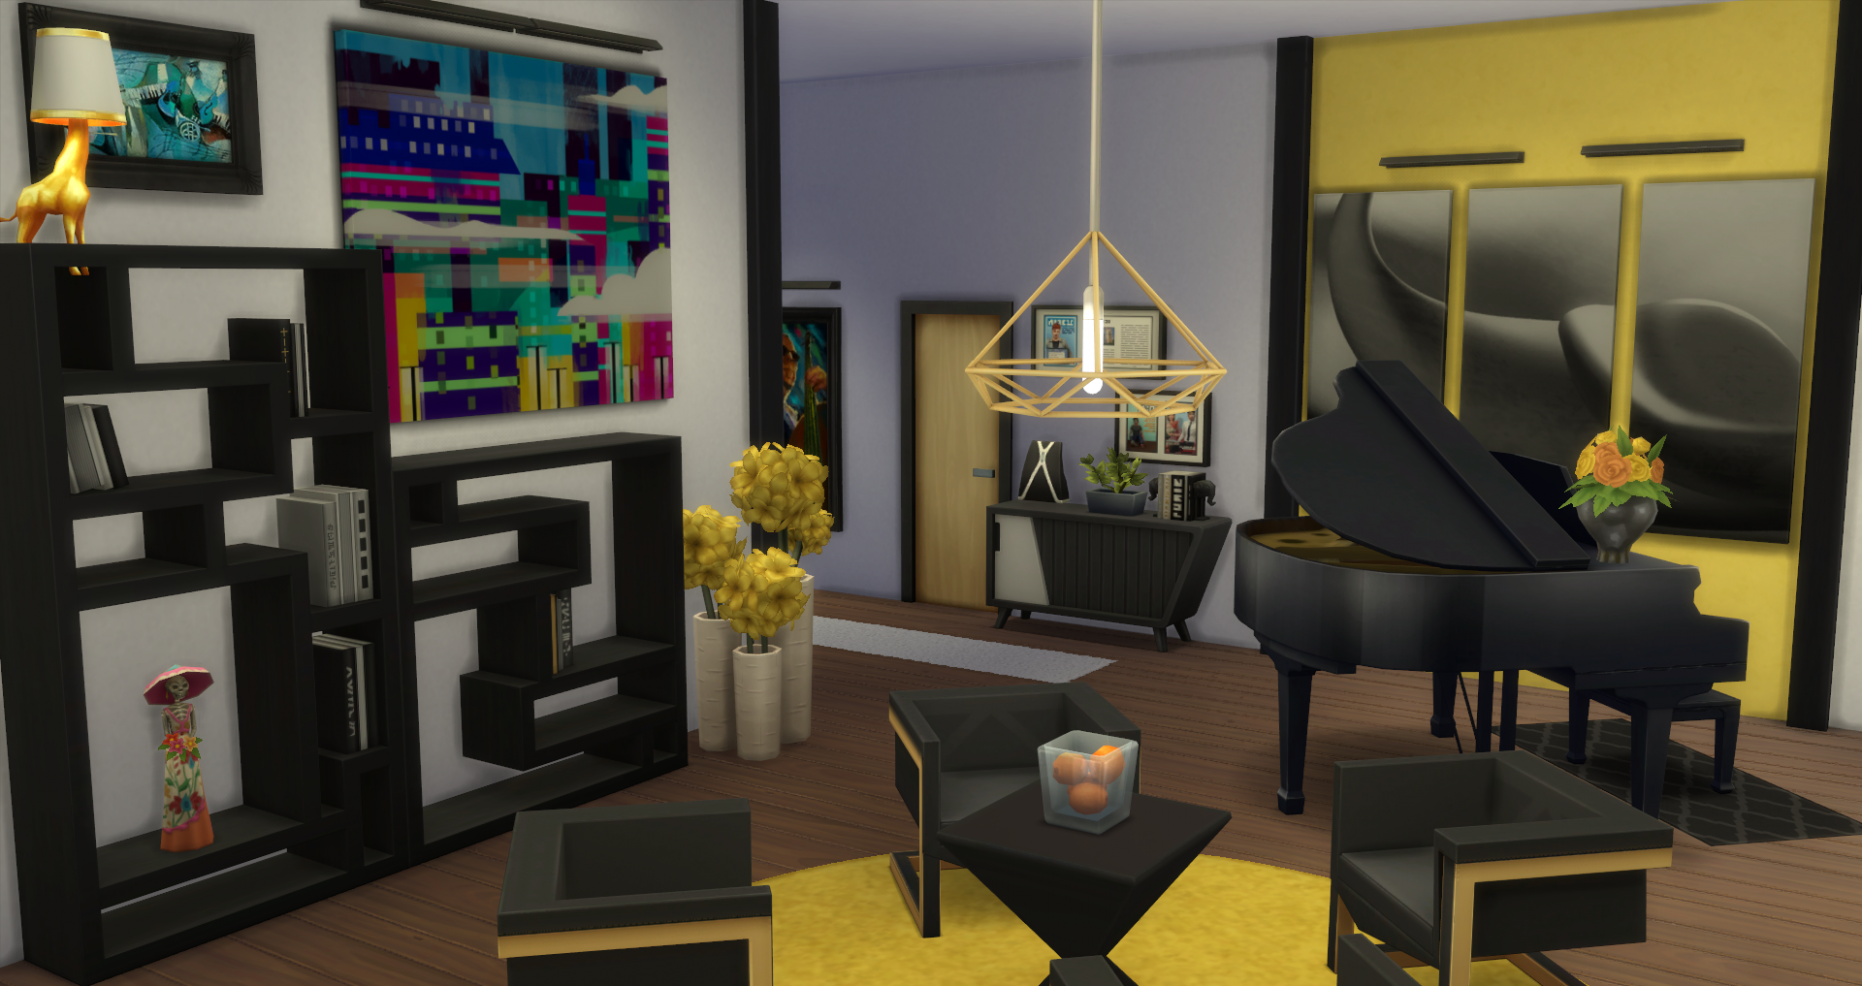 Dining Room Ideas Sims 9 | aldystalkerz.blogspot